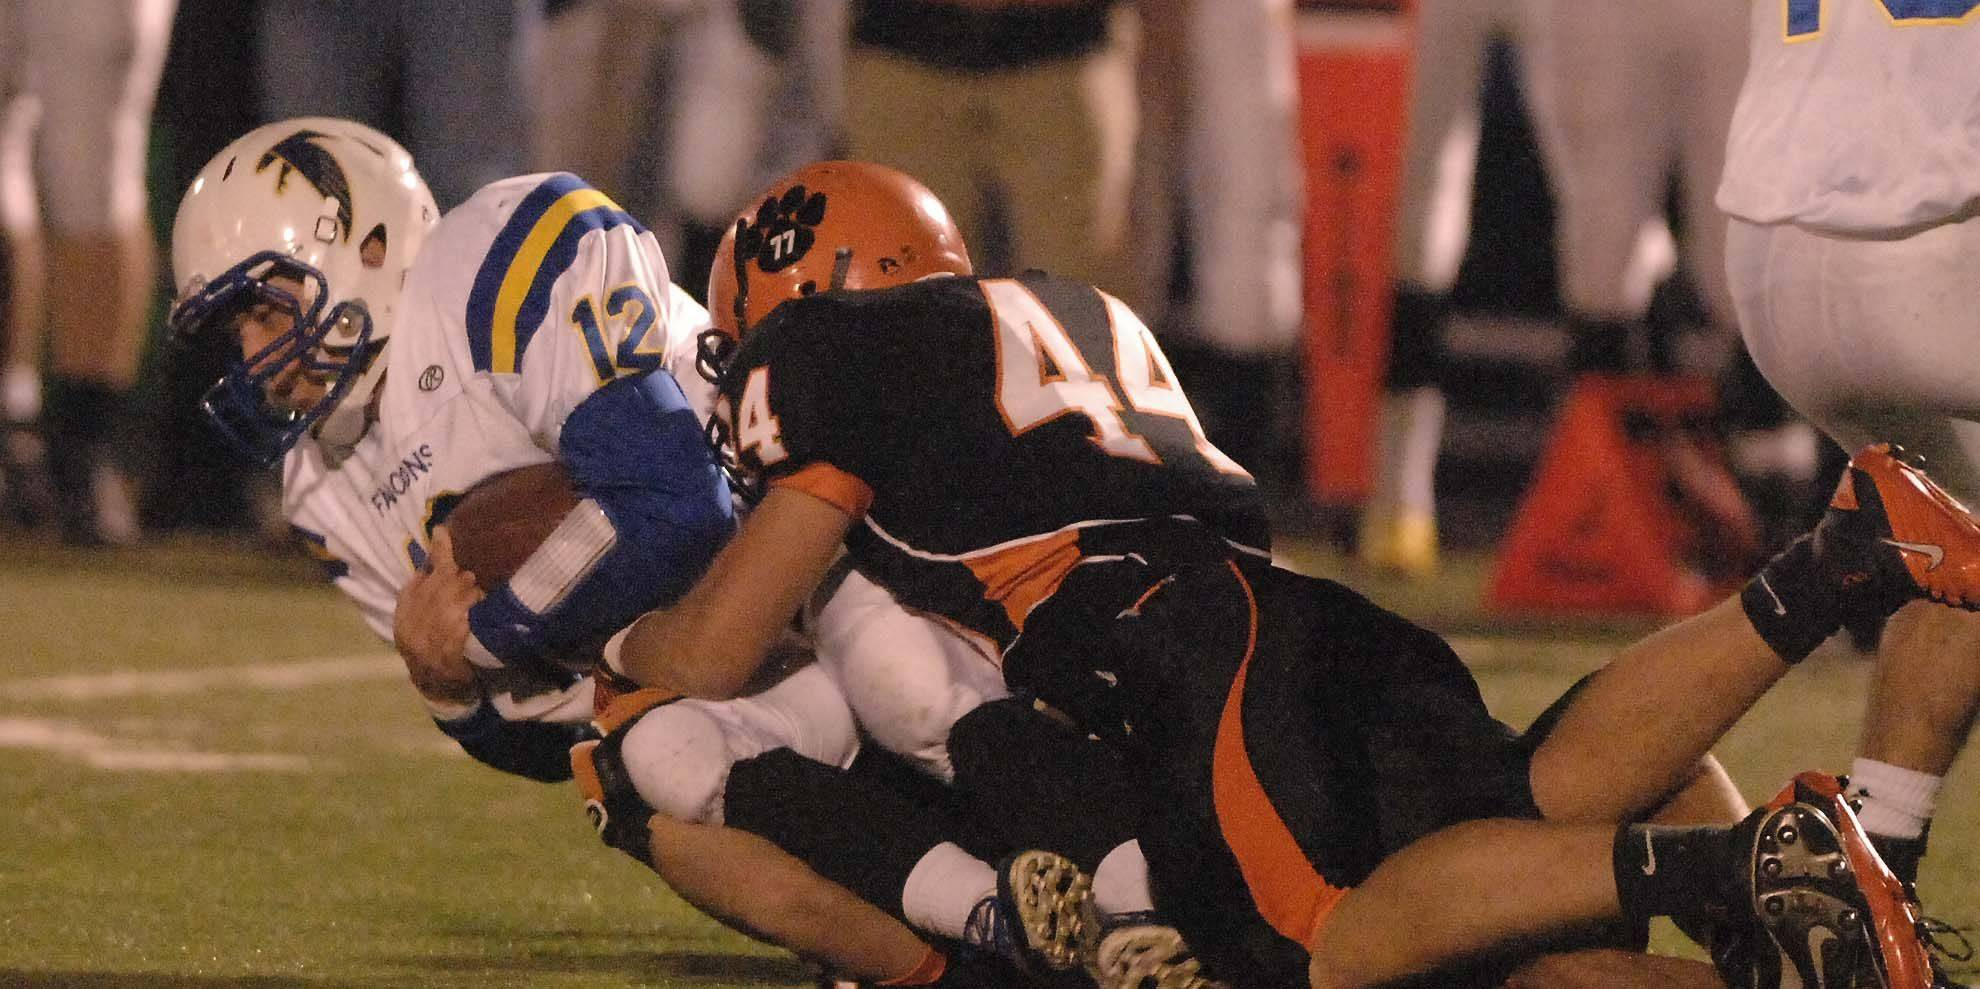 Reece Butler of Wheaton North,left, is pulled down by Brandon Peterson of Wheaton Warrenville South during the Wheaton North at Wheaton Warrenville South game Saturday.